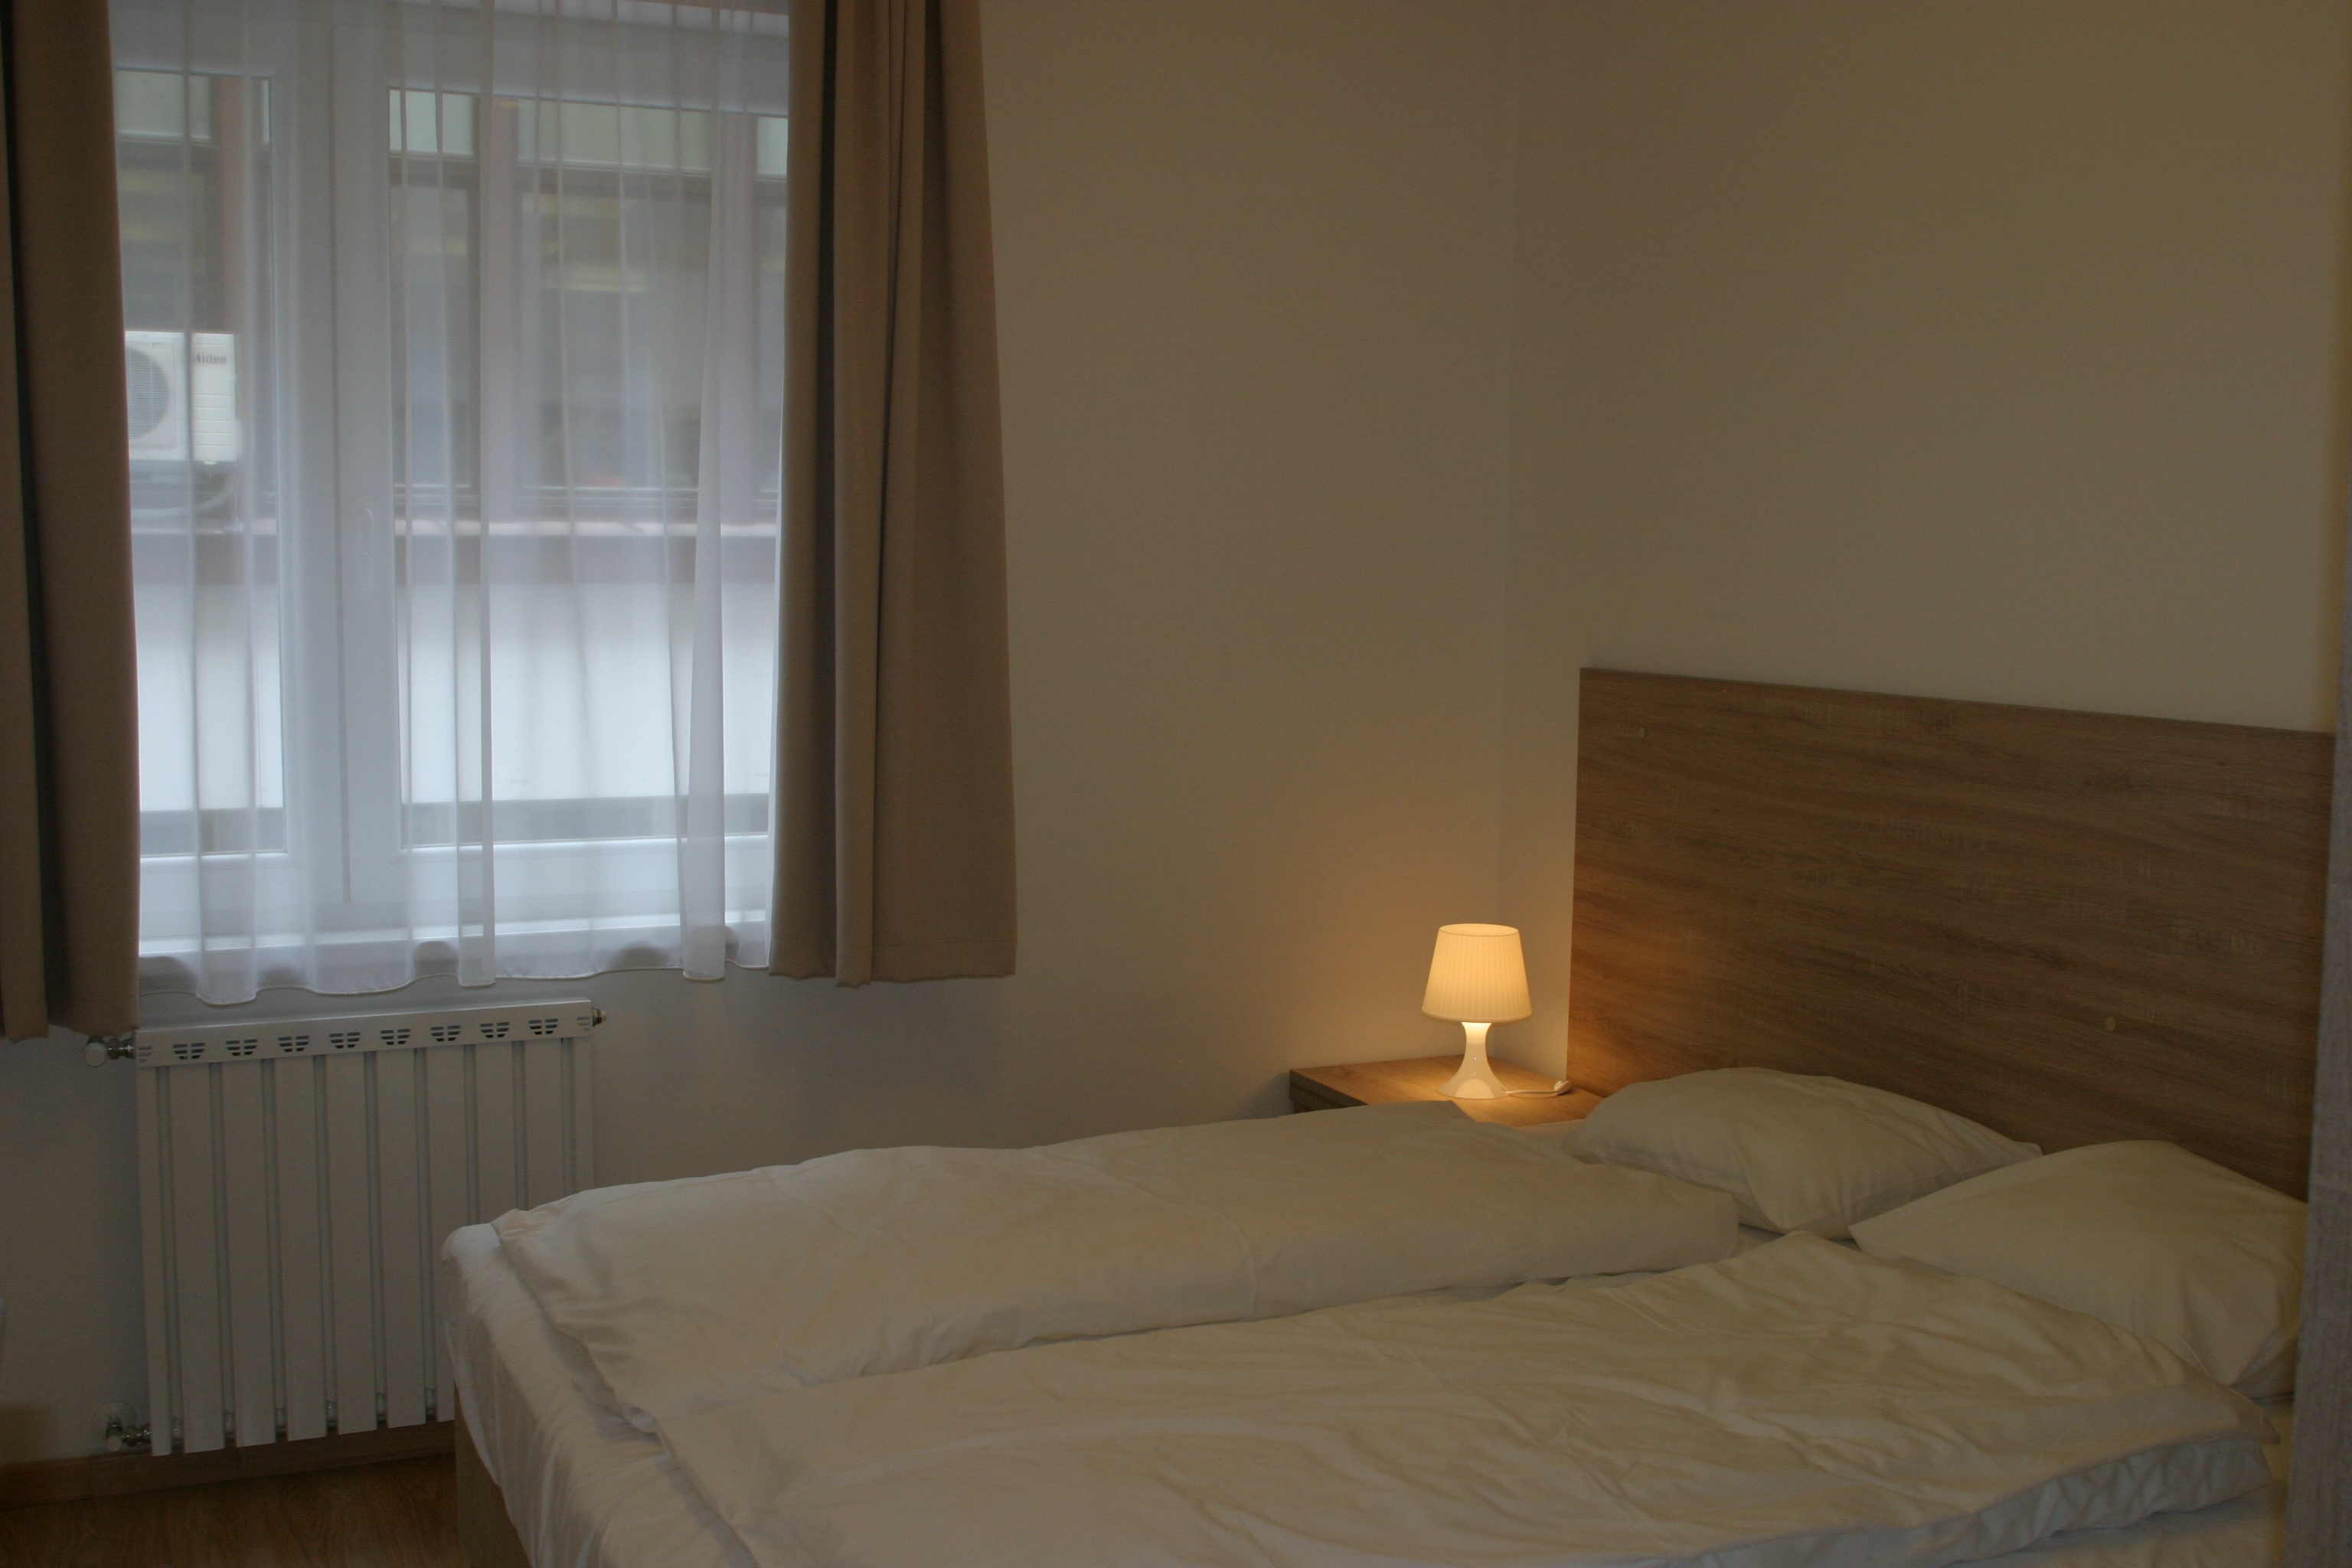 VIII. Kisfaludy Str. 18-20. Apartment 608